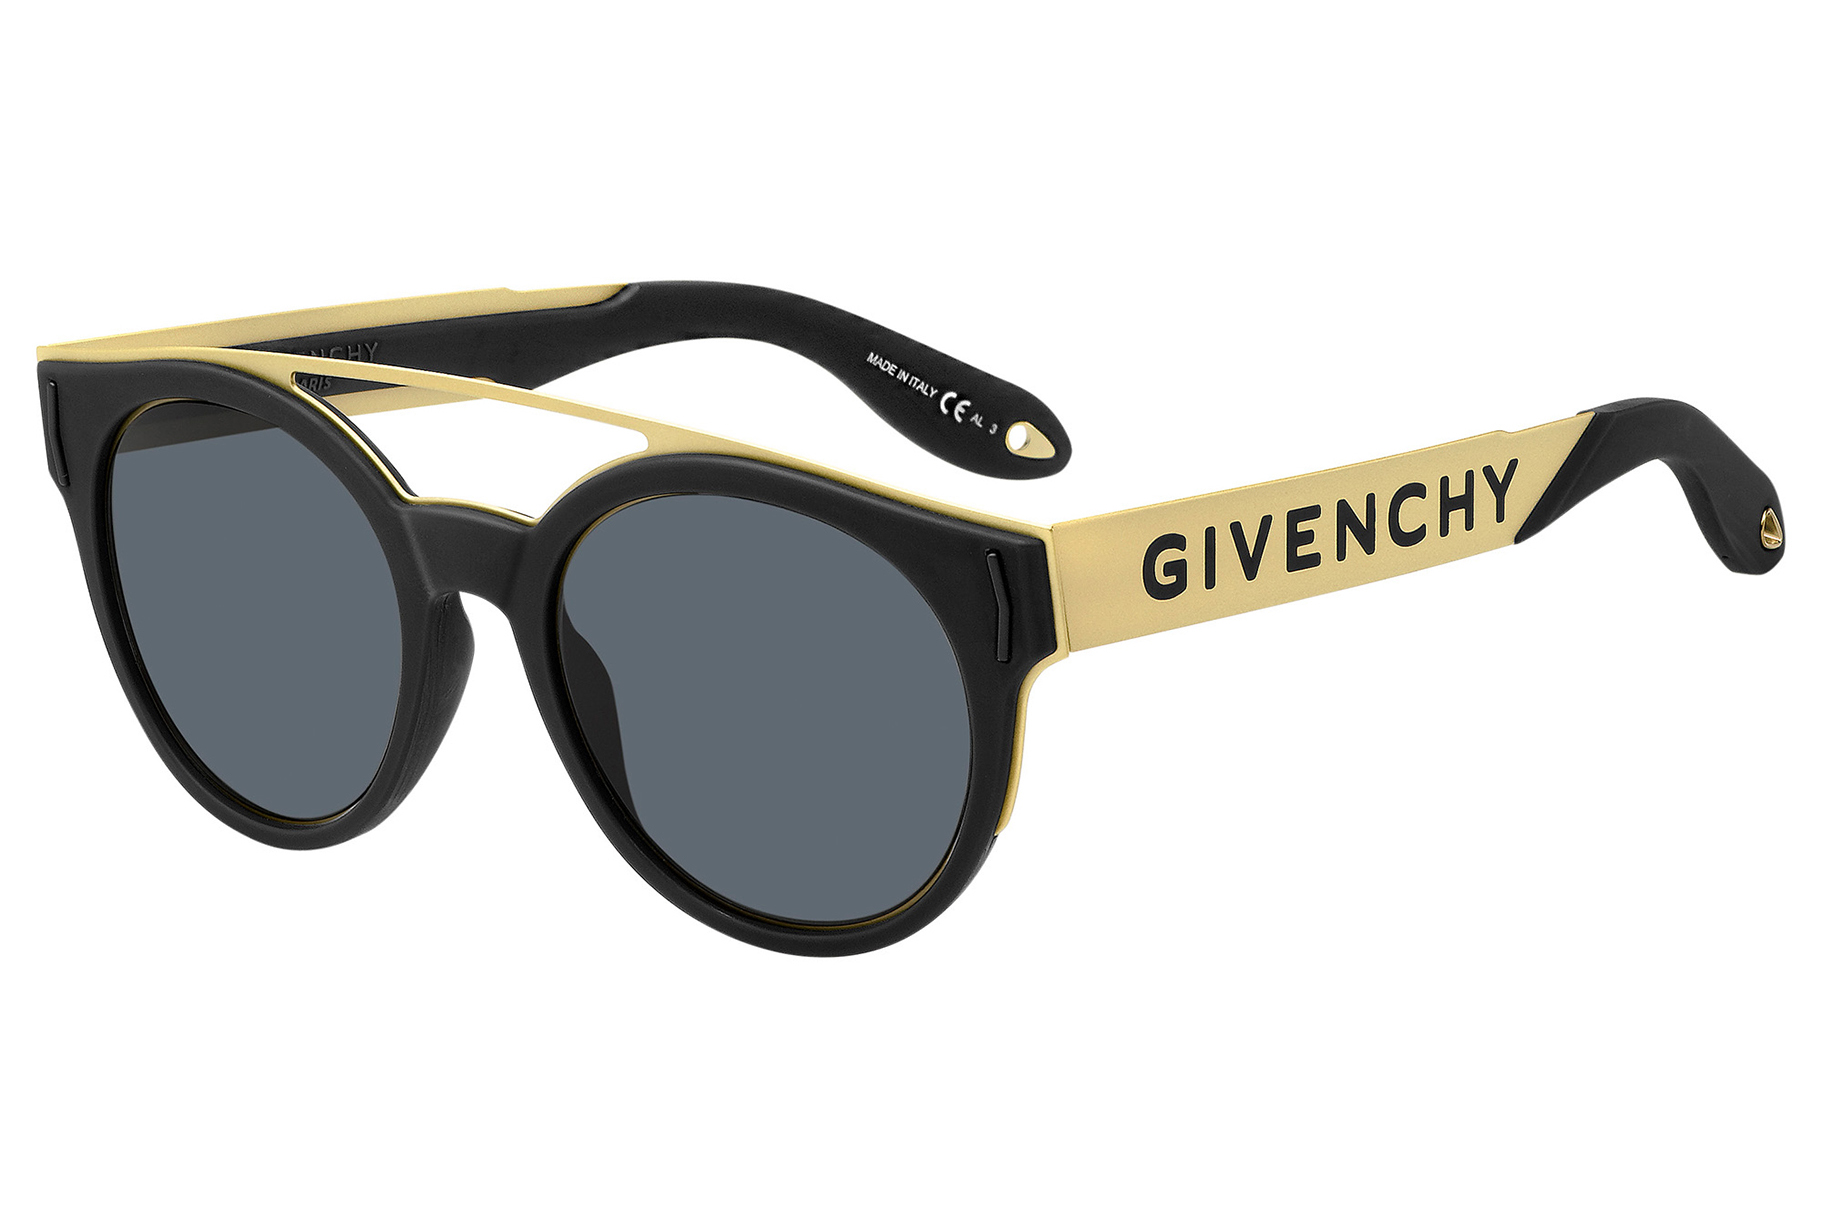 837a18fd2634 Givenchy Sunglasses - product design ...